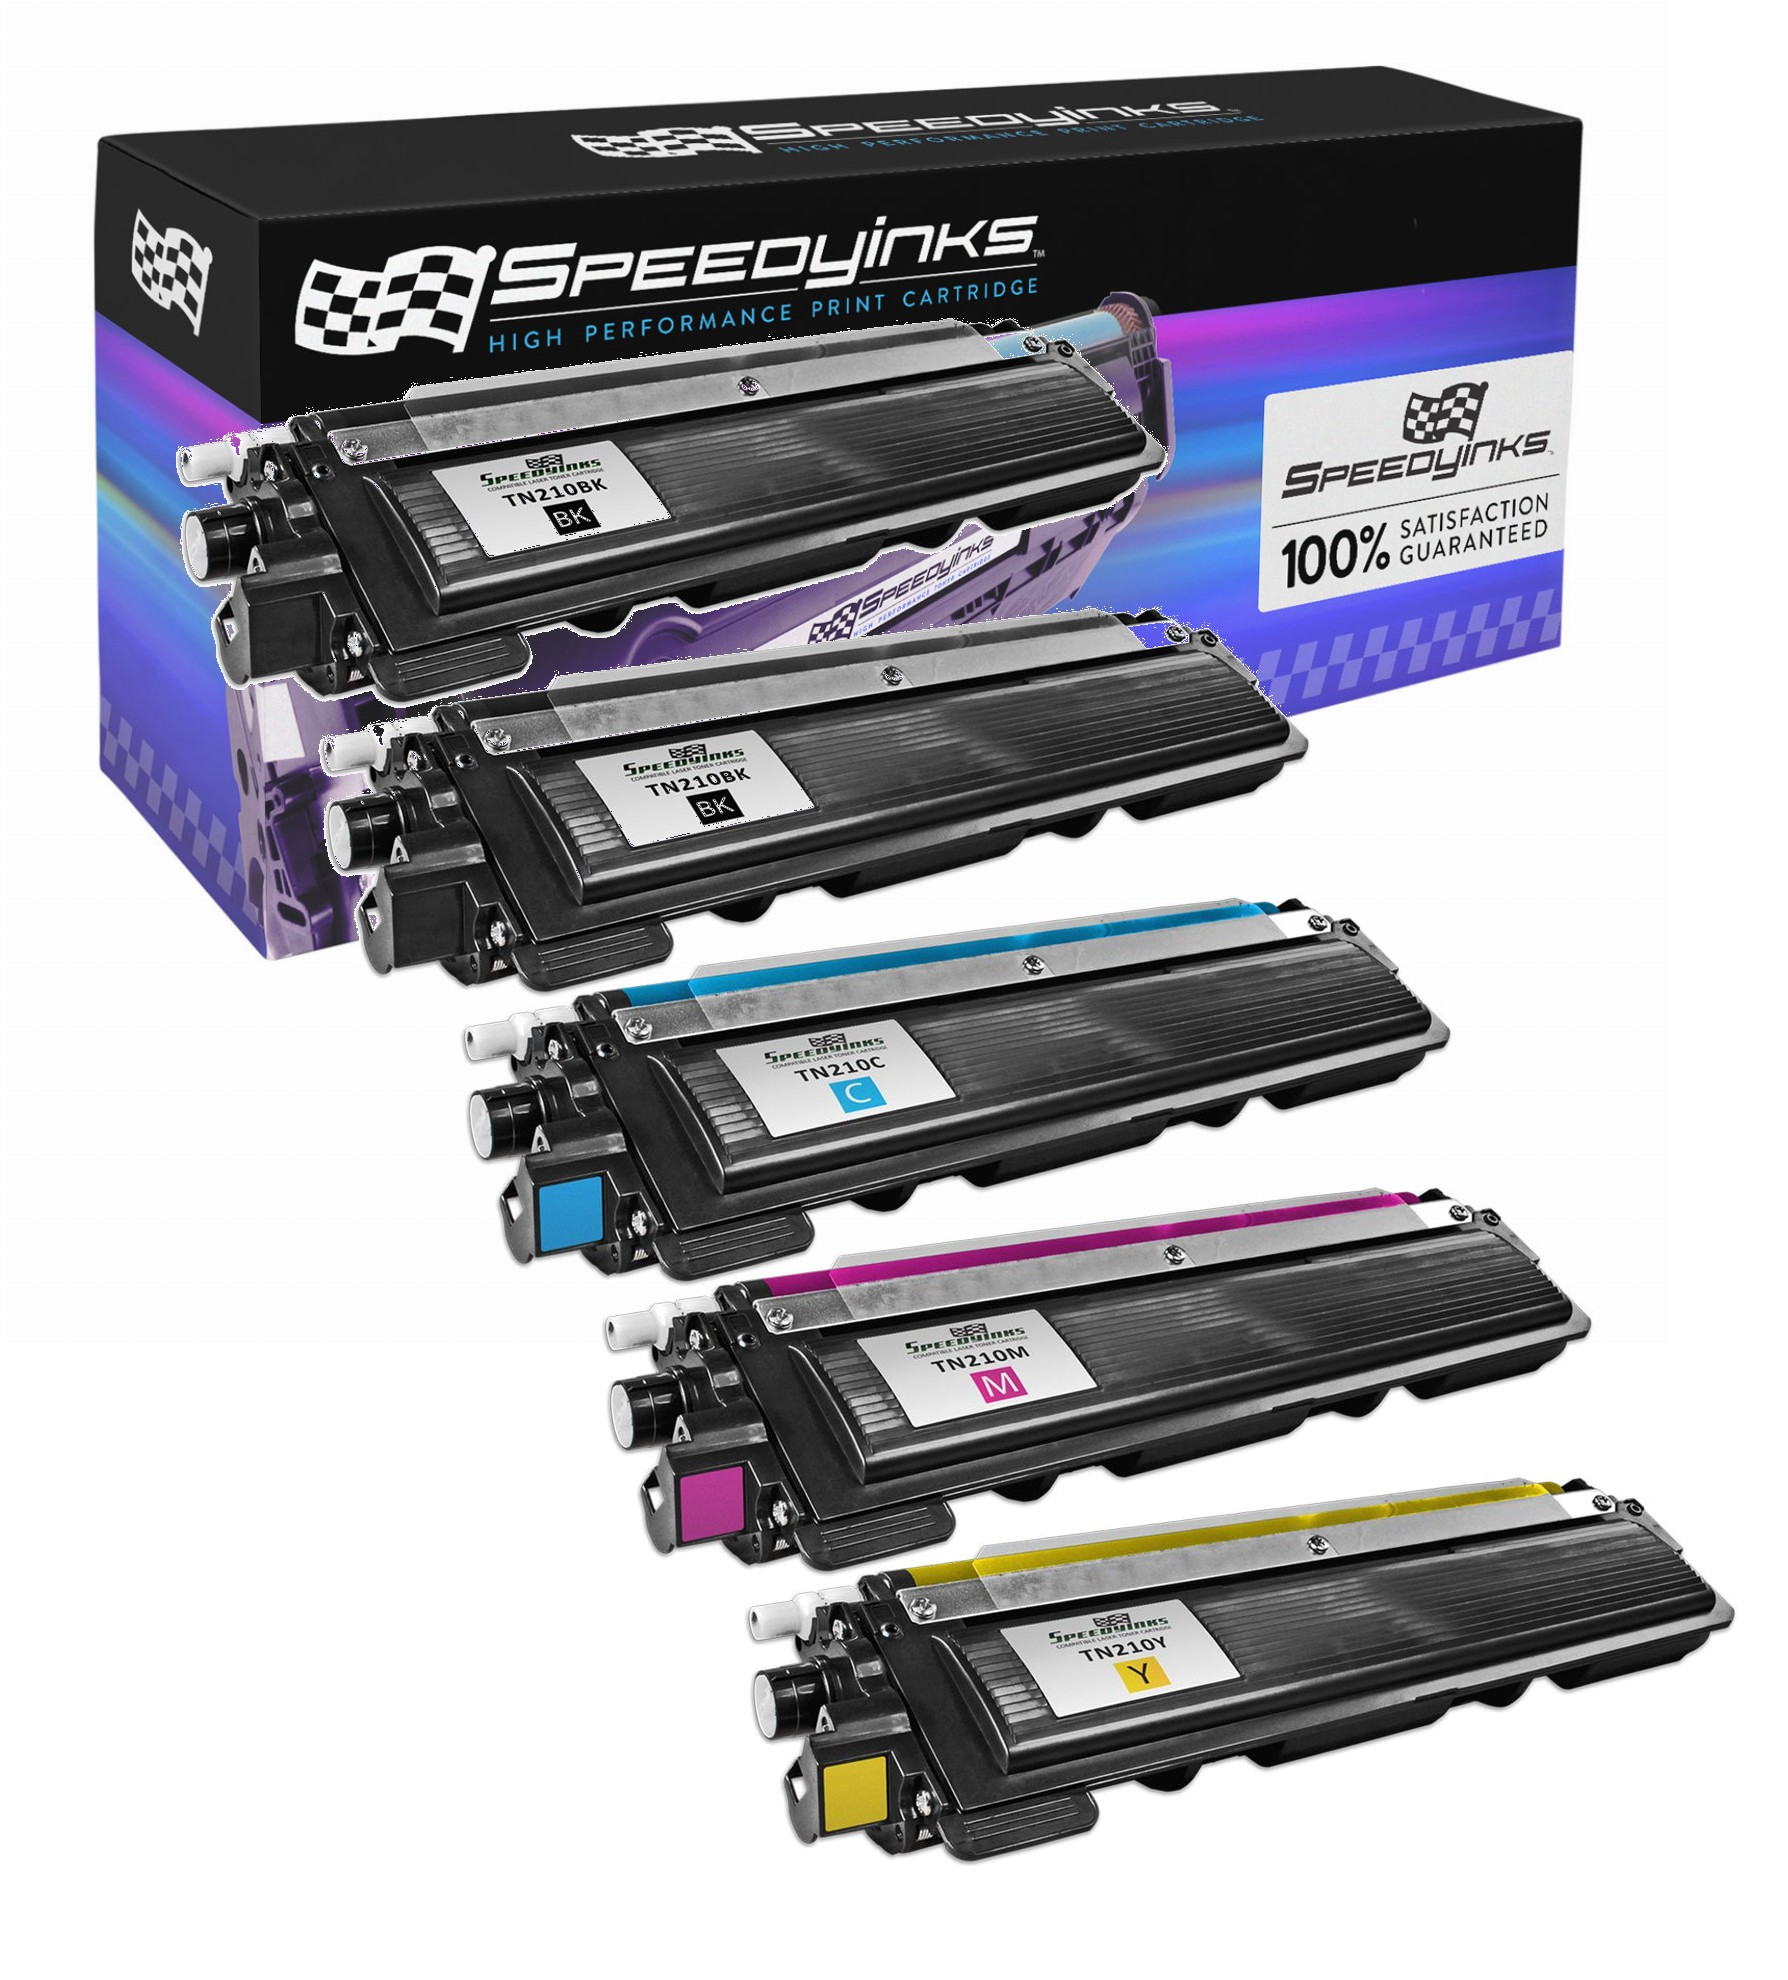 SpeedyInks - Brother Compatible TN-210 Set of 5 Laser Toner Cartridges: 2 Black TN210BK of 1 of each Cyan TN210C, Magenta TN210M, Yellow TN210Y